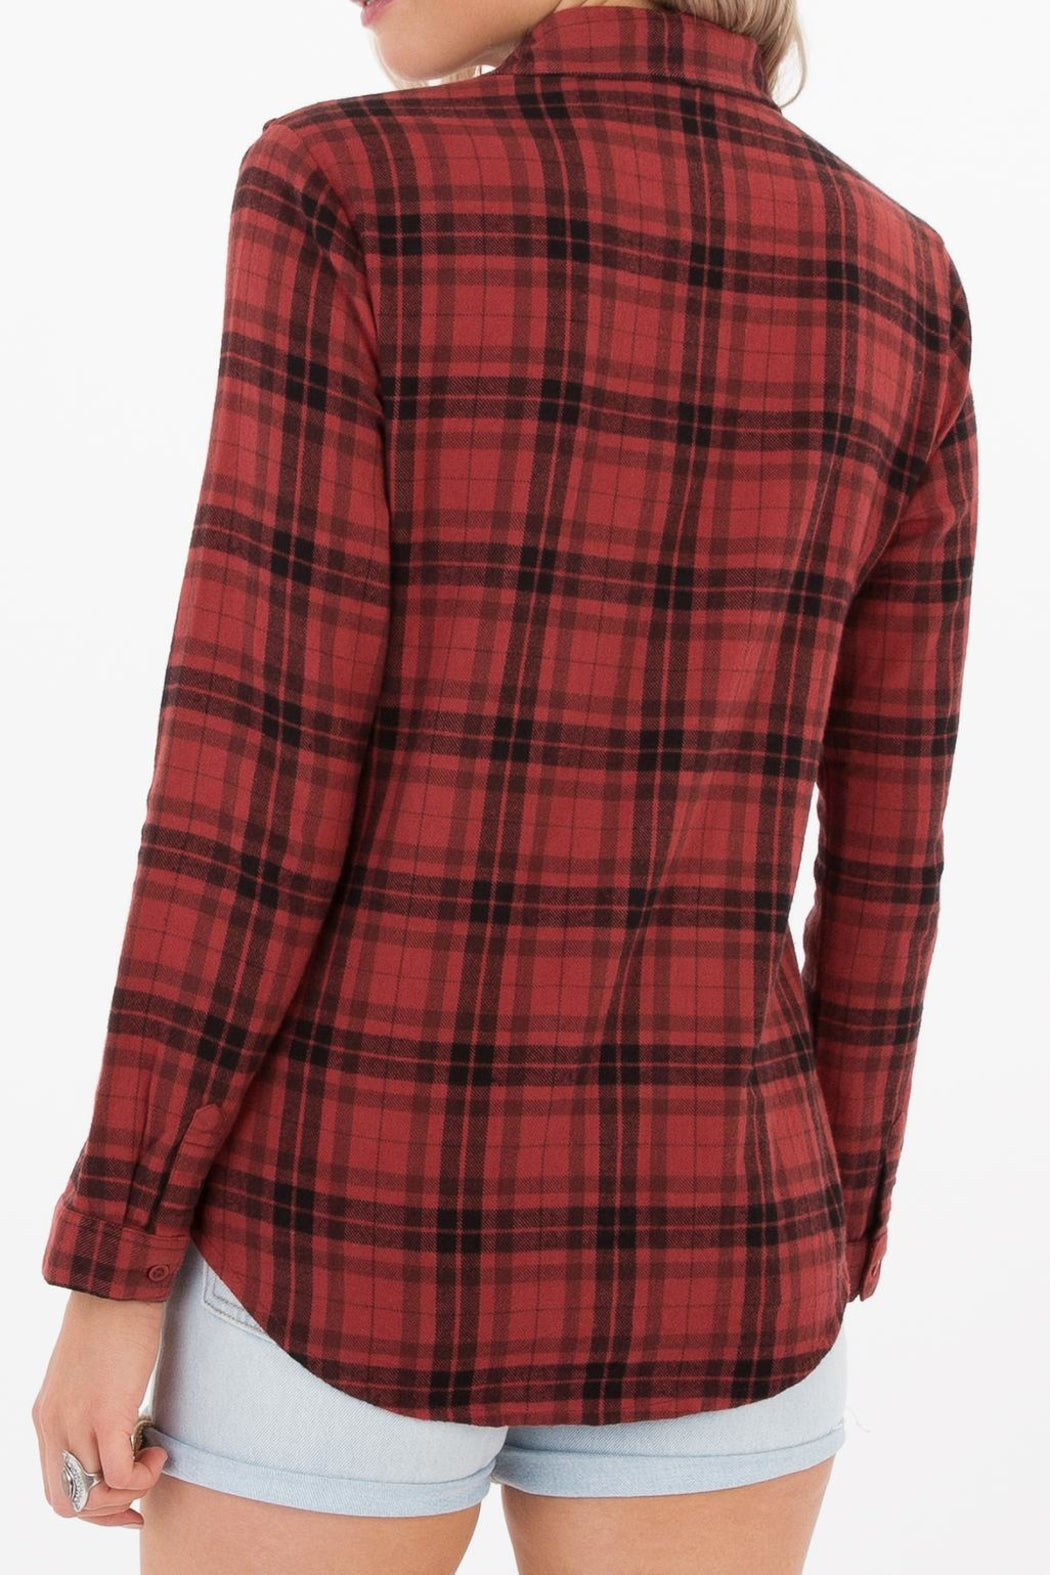 White Crow Carmen Plaid Shirt